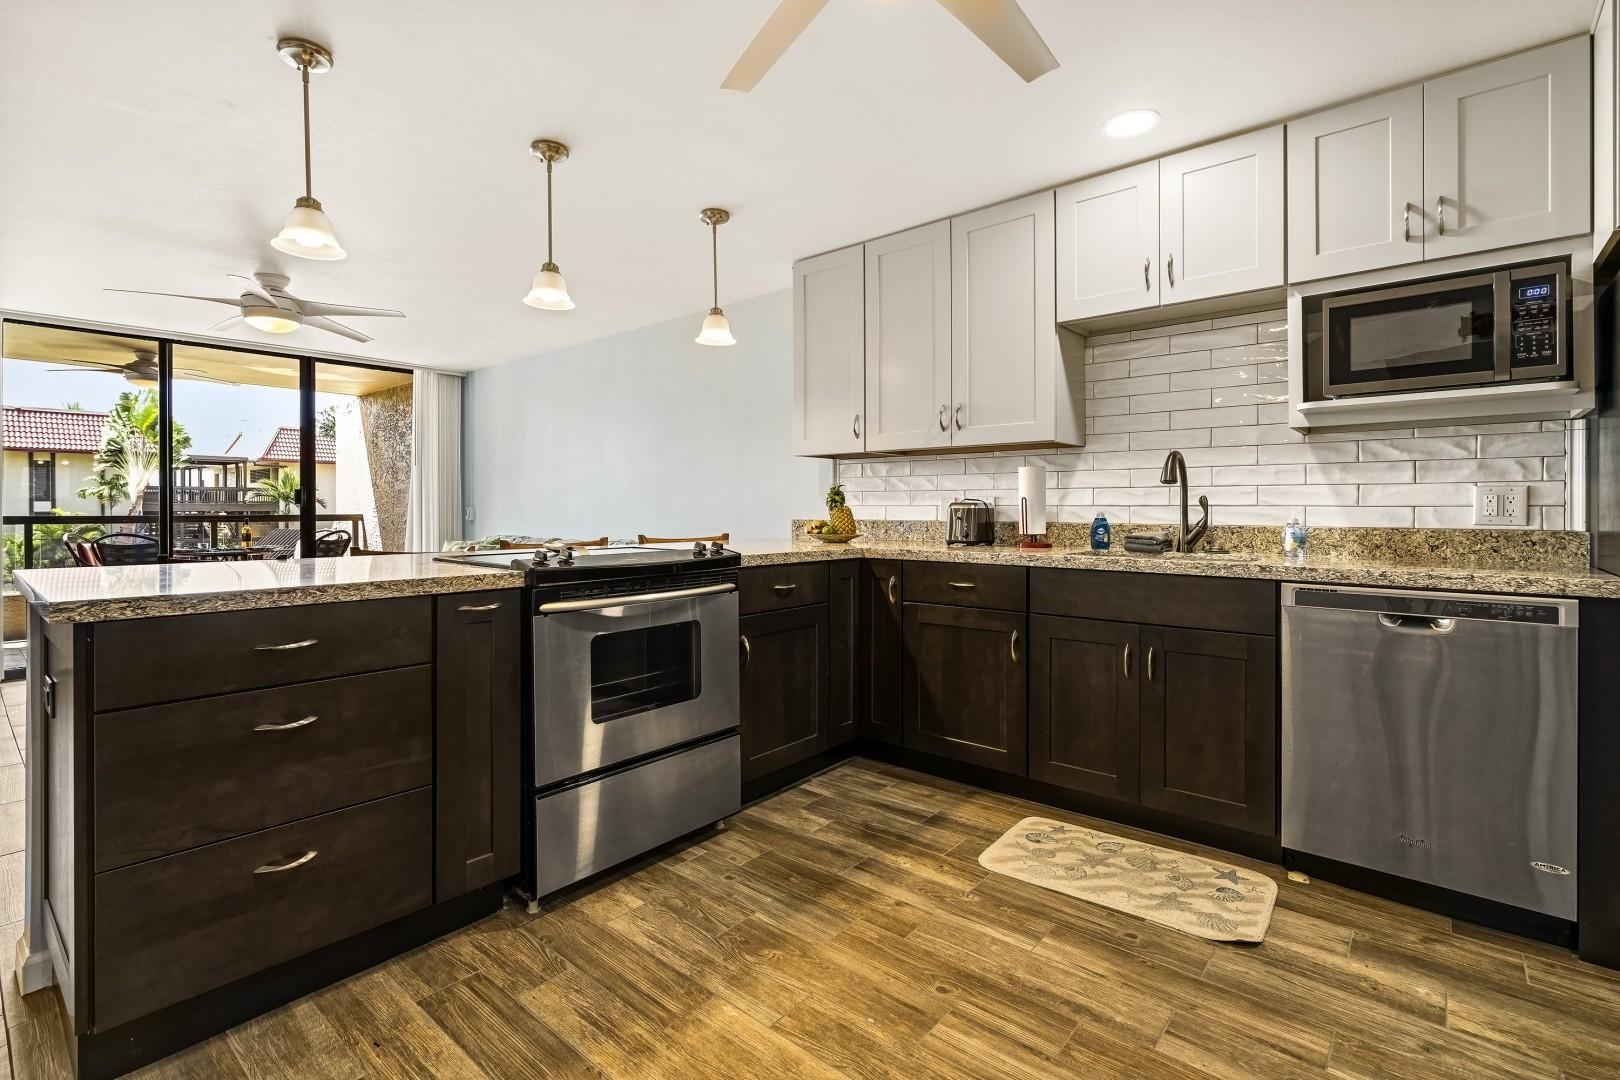 Fully renovated kitchen with open sightlines